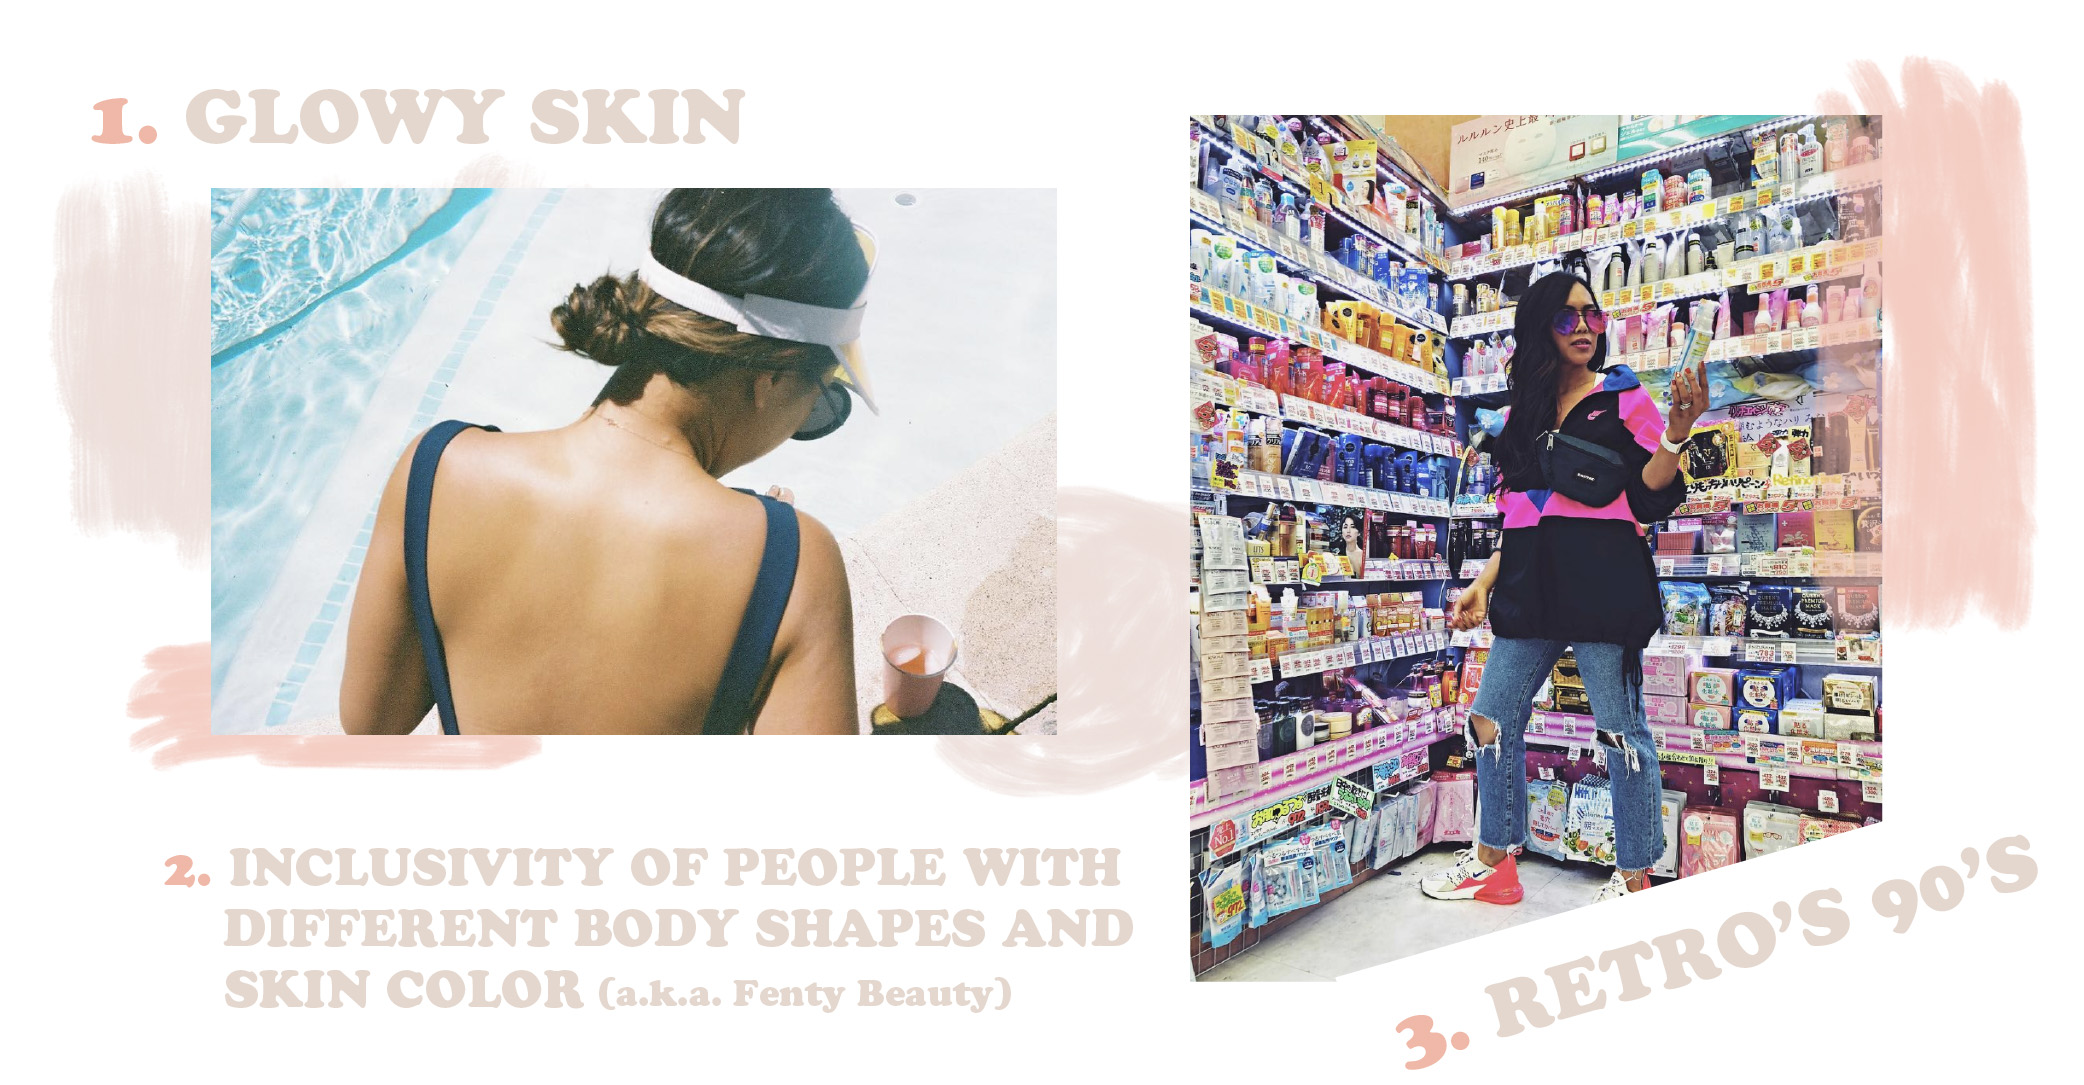 1. Glowy Skin, 2. Inclusivity of people with different body shapes and skin color (a.k.a. Fenty Beauty, 3. Retro 90's